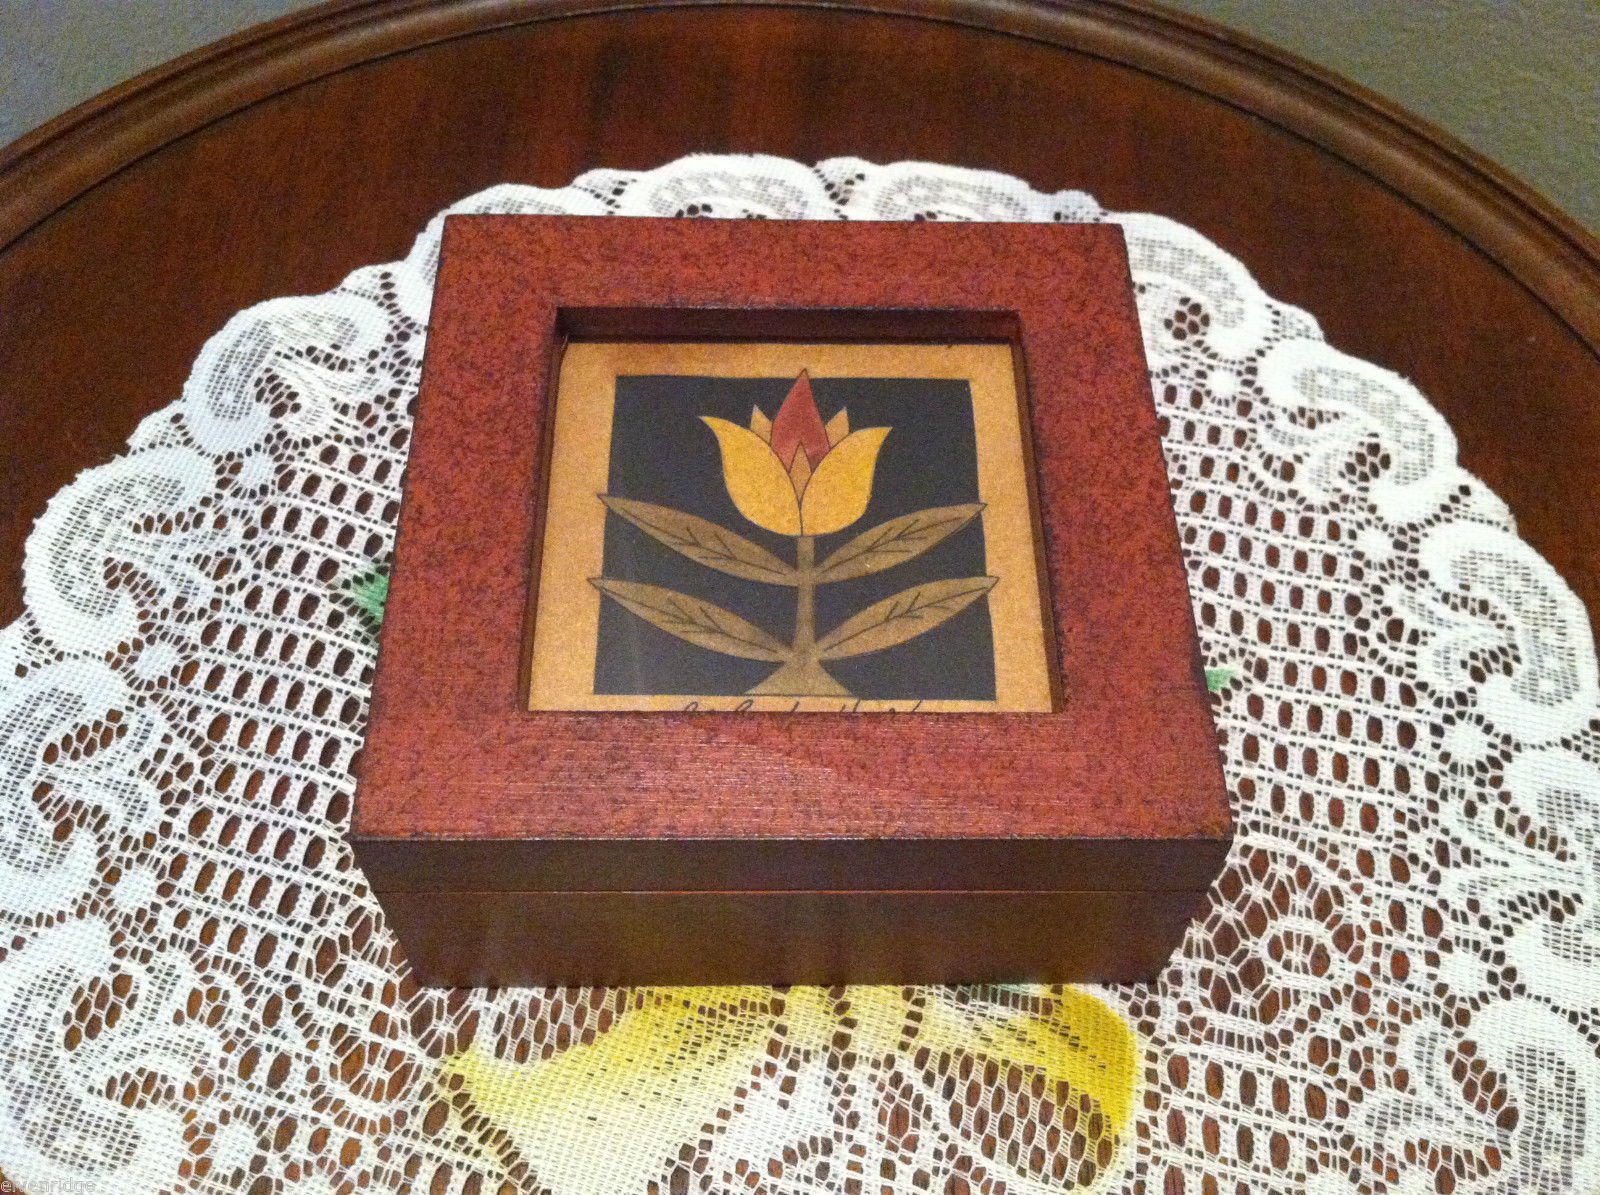 Paper Cutting Tulip Design Small Trinket Box